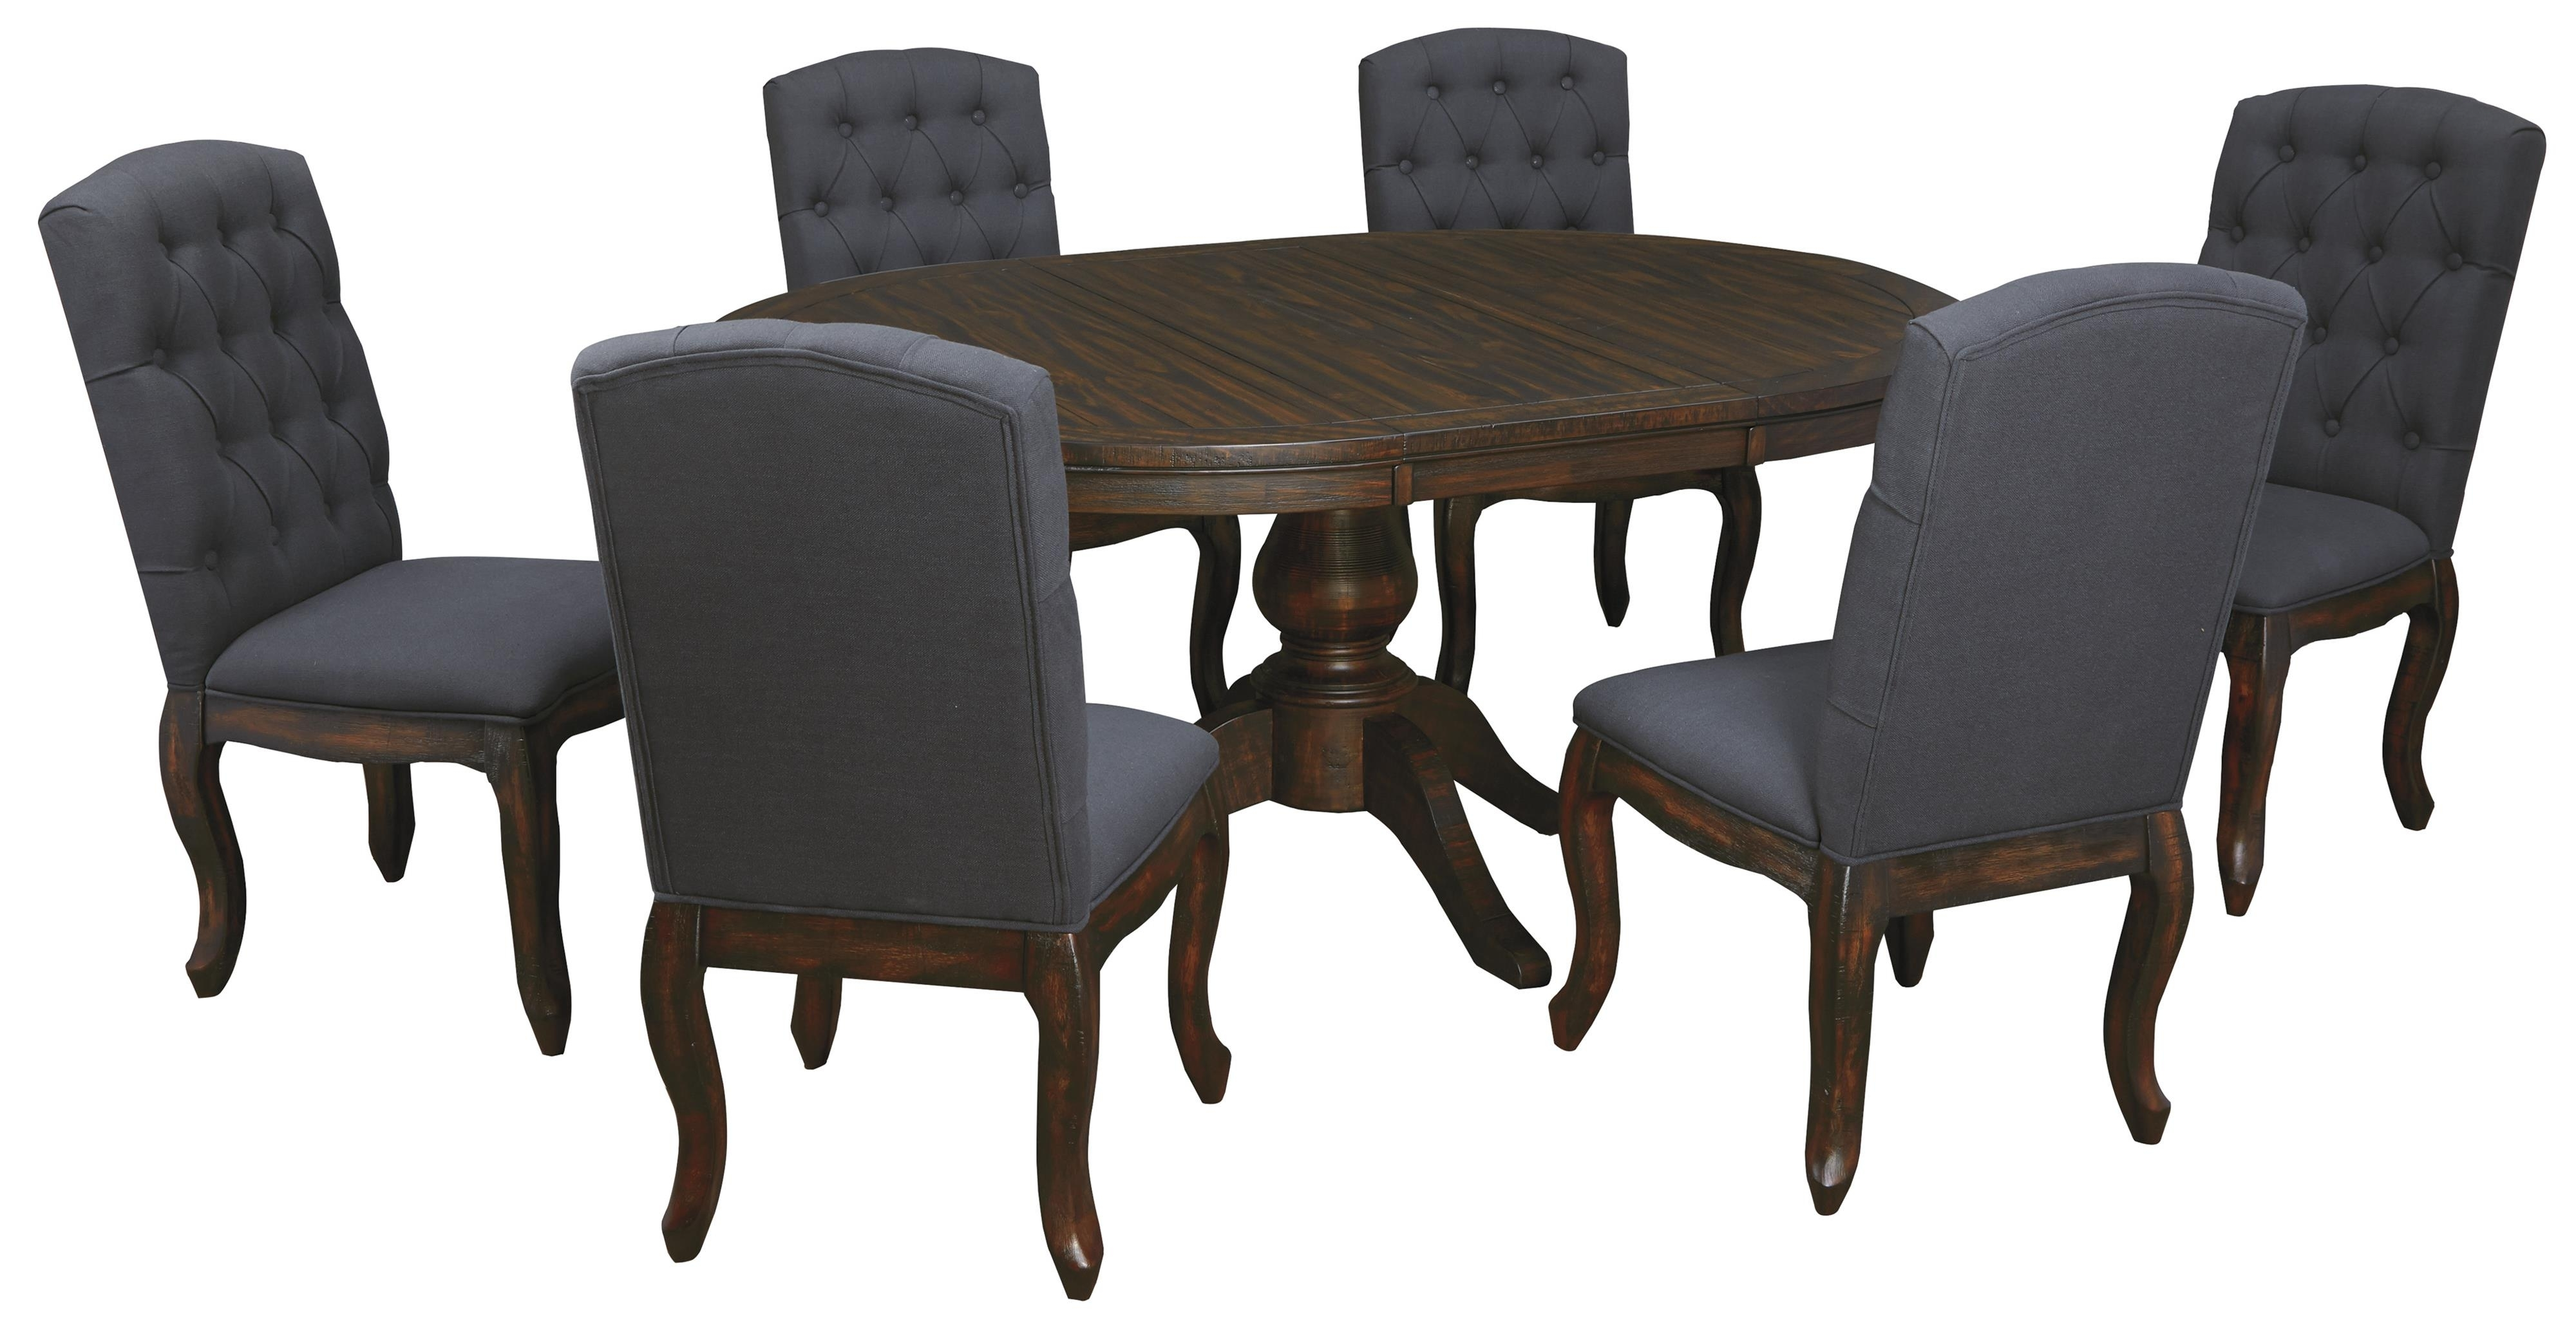 7 Piece Oval Dining Table Set With Upholstered Side Chairs Within 2017 Craftsman 9 Piece Extension Dining Sets With Uph Side Chairs (Photo 18 of 20)